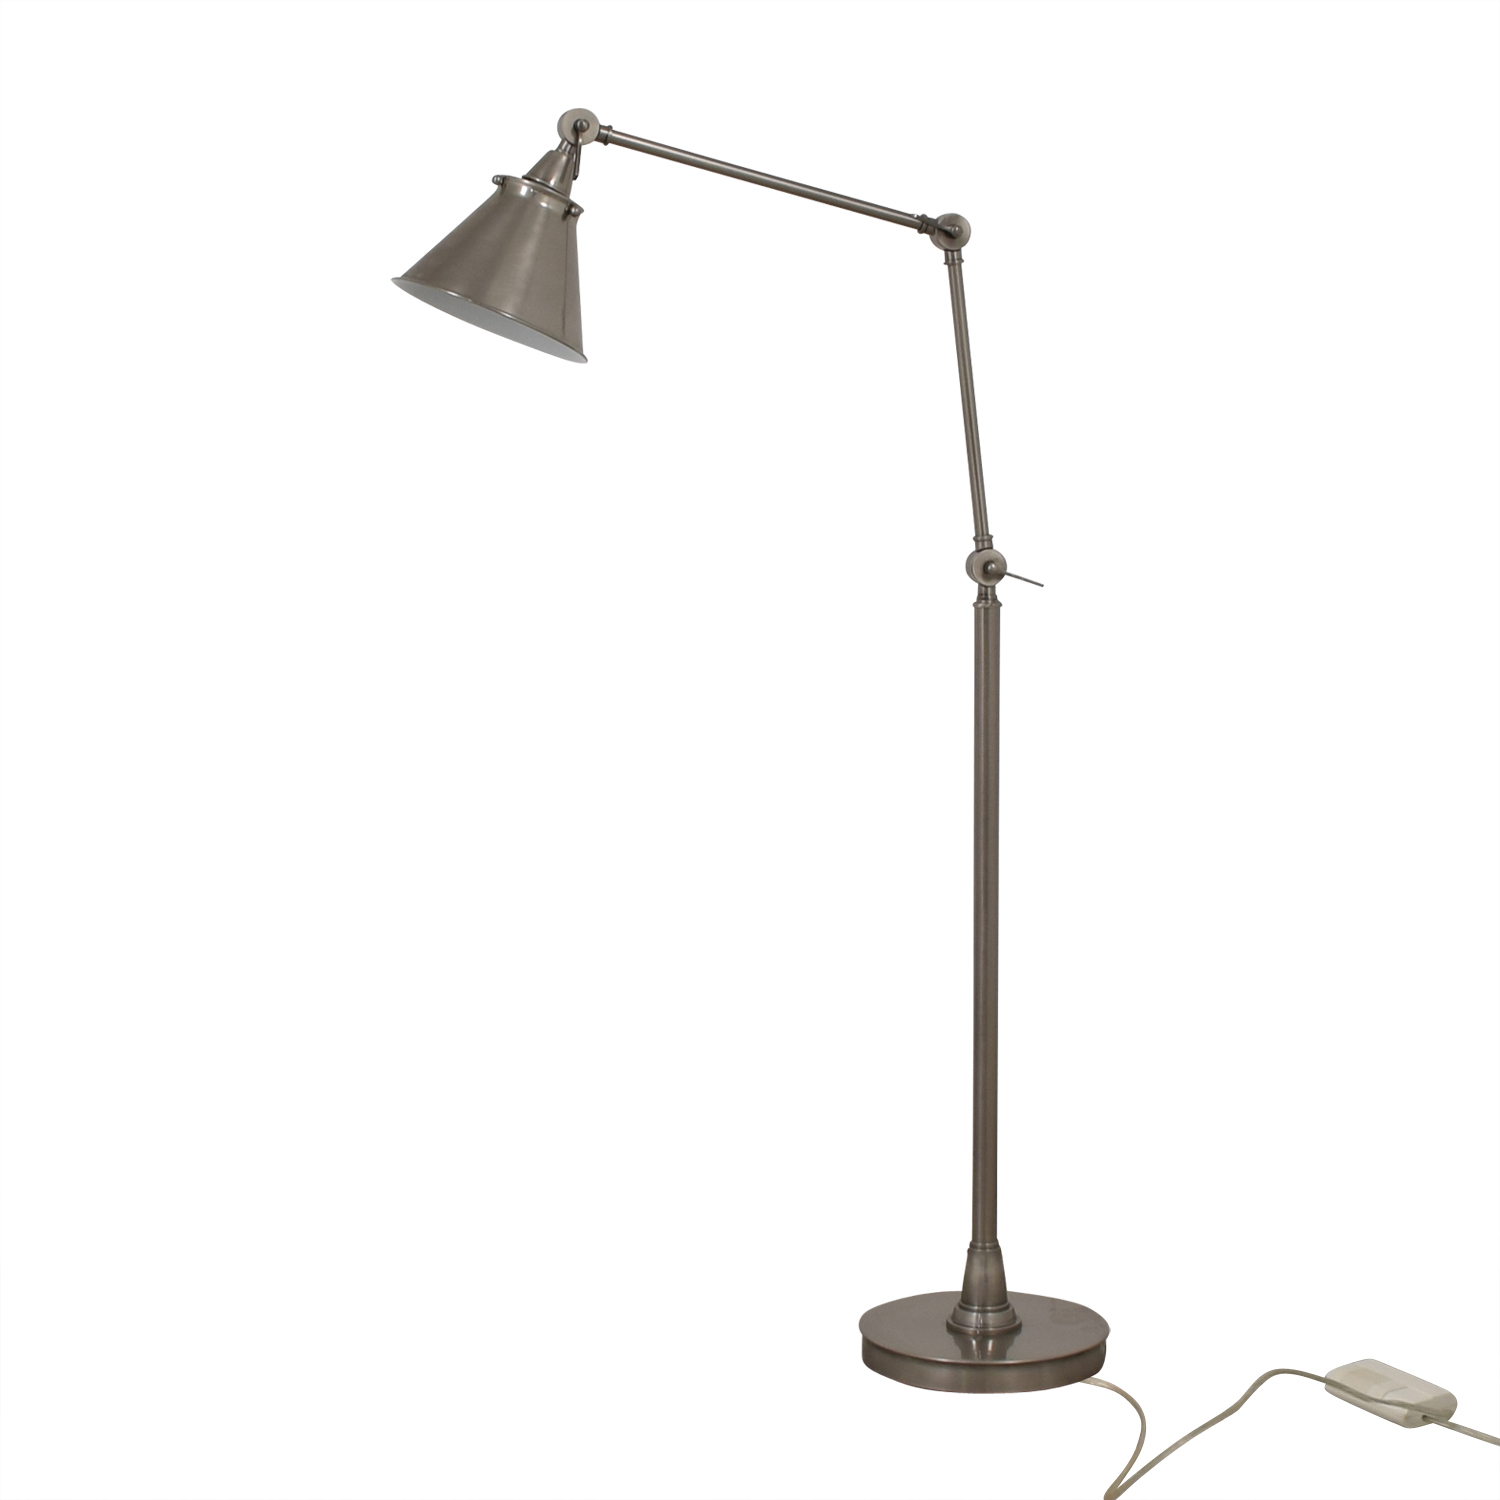 Pottery Barn Pottery Barn Architect's Task Floor Lamp coupon